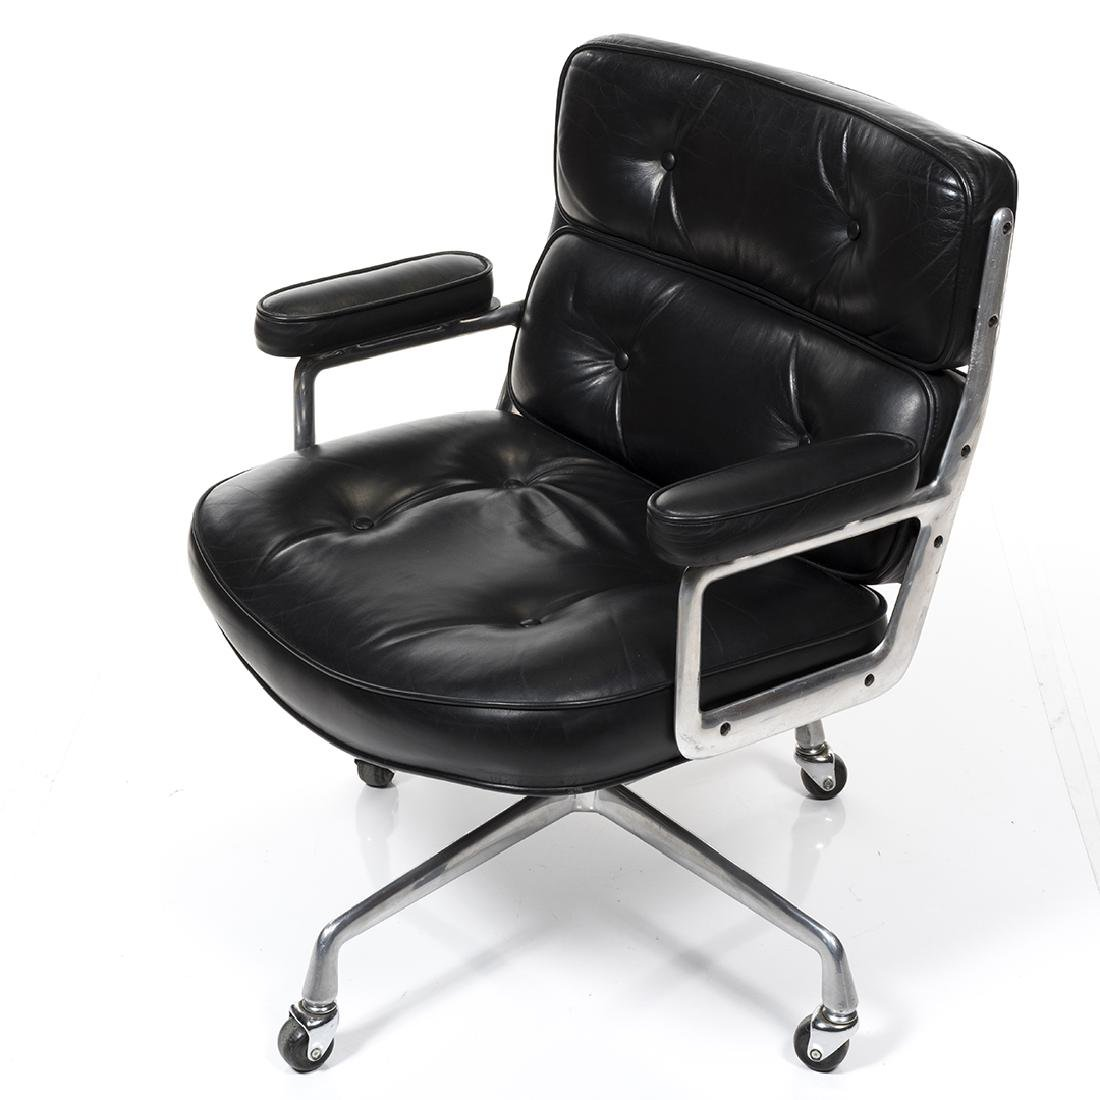 Charles Eames Time-Life Lobby Chair - 5